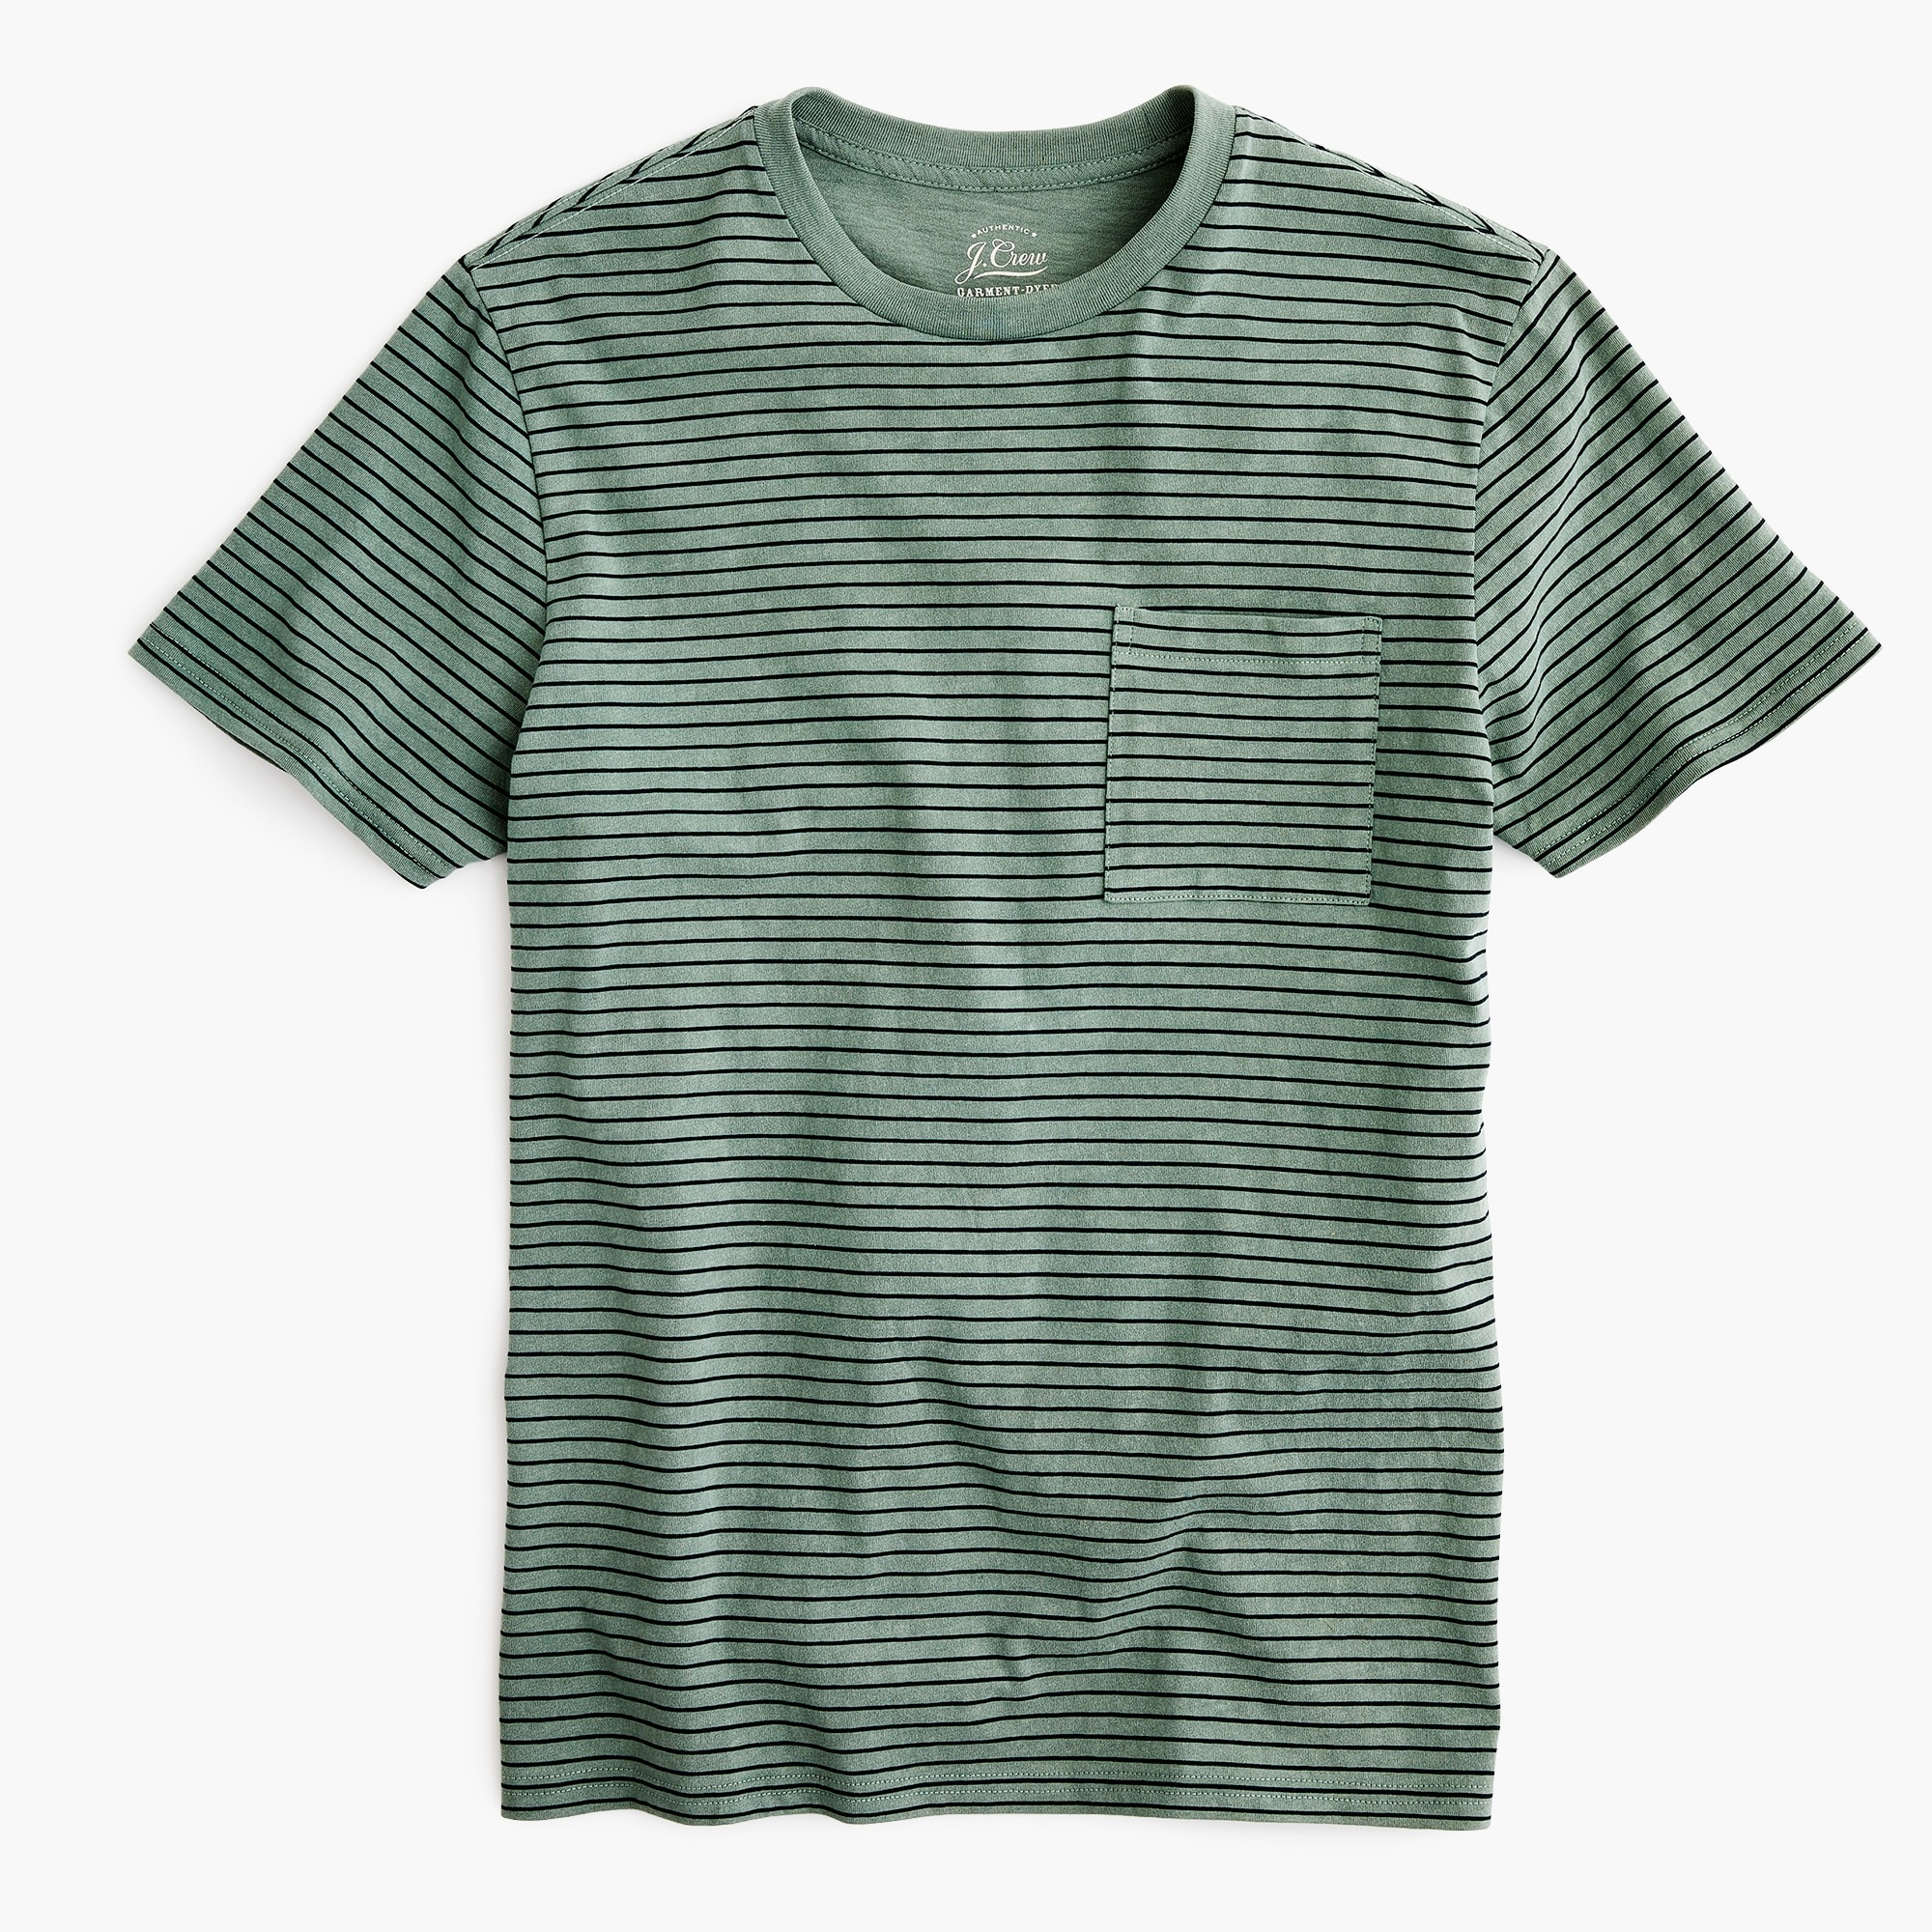 Image 3 for Garment-dyed T-shirt in green stripe